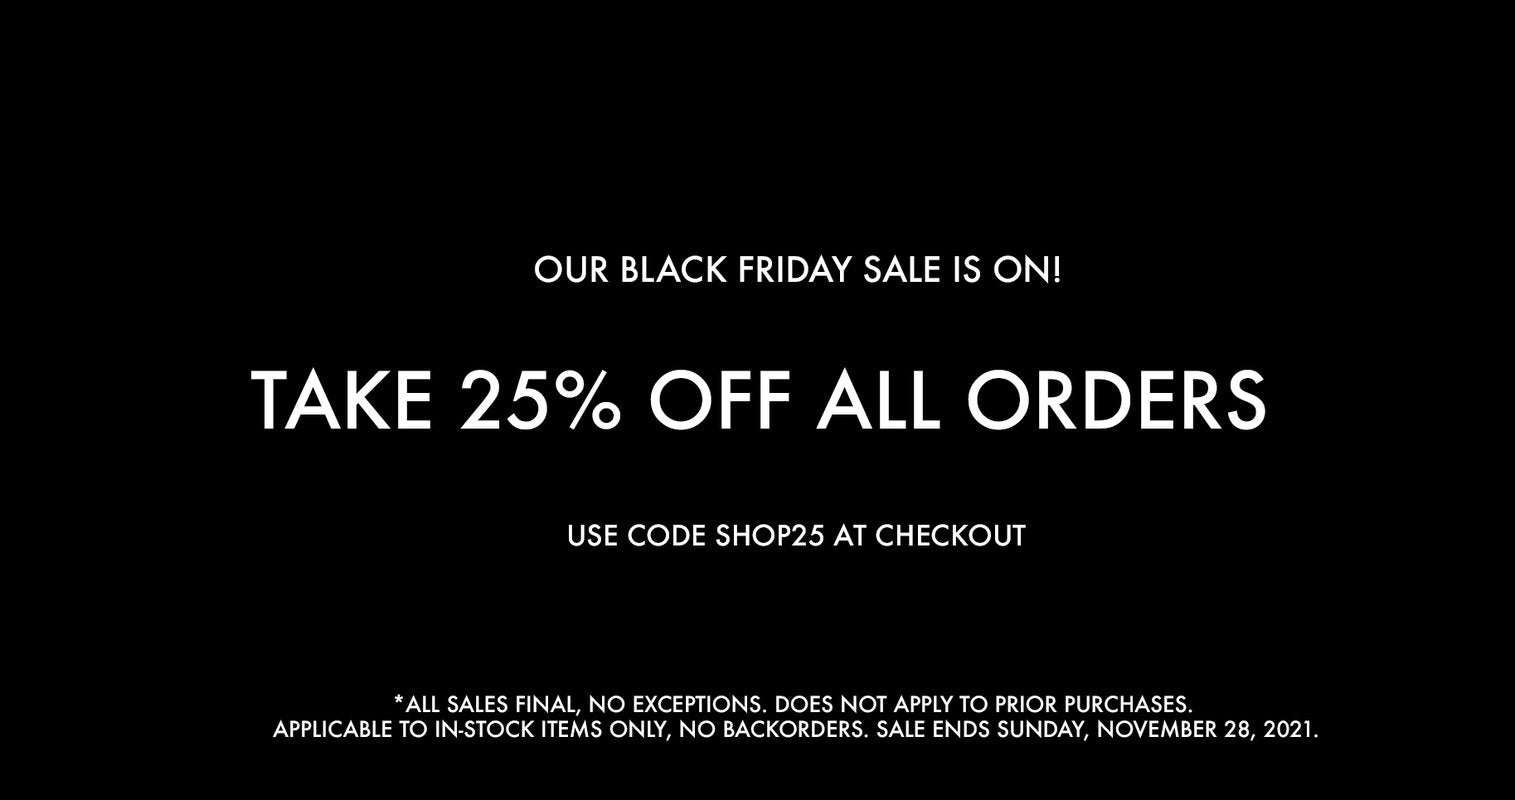 sachi jewelry fine jewelry black friday sale 25% off